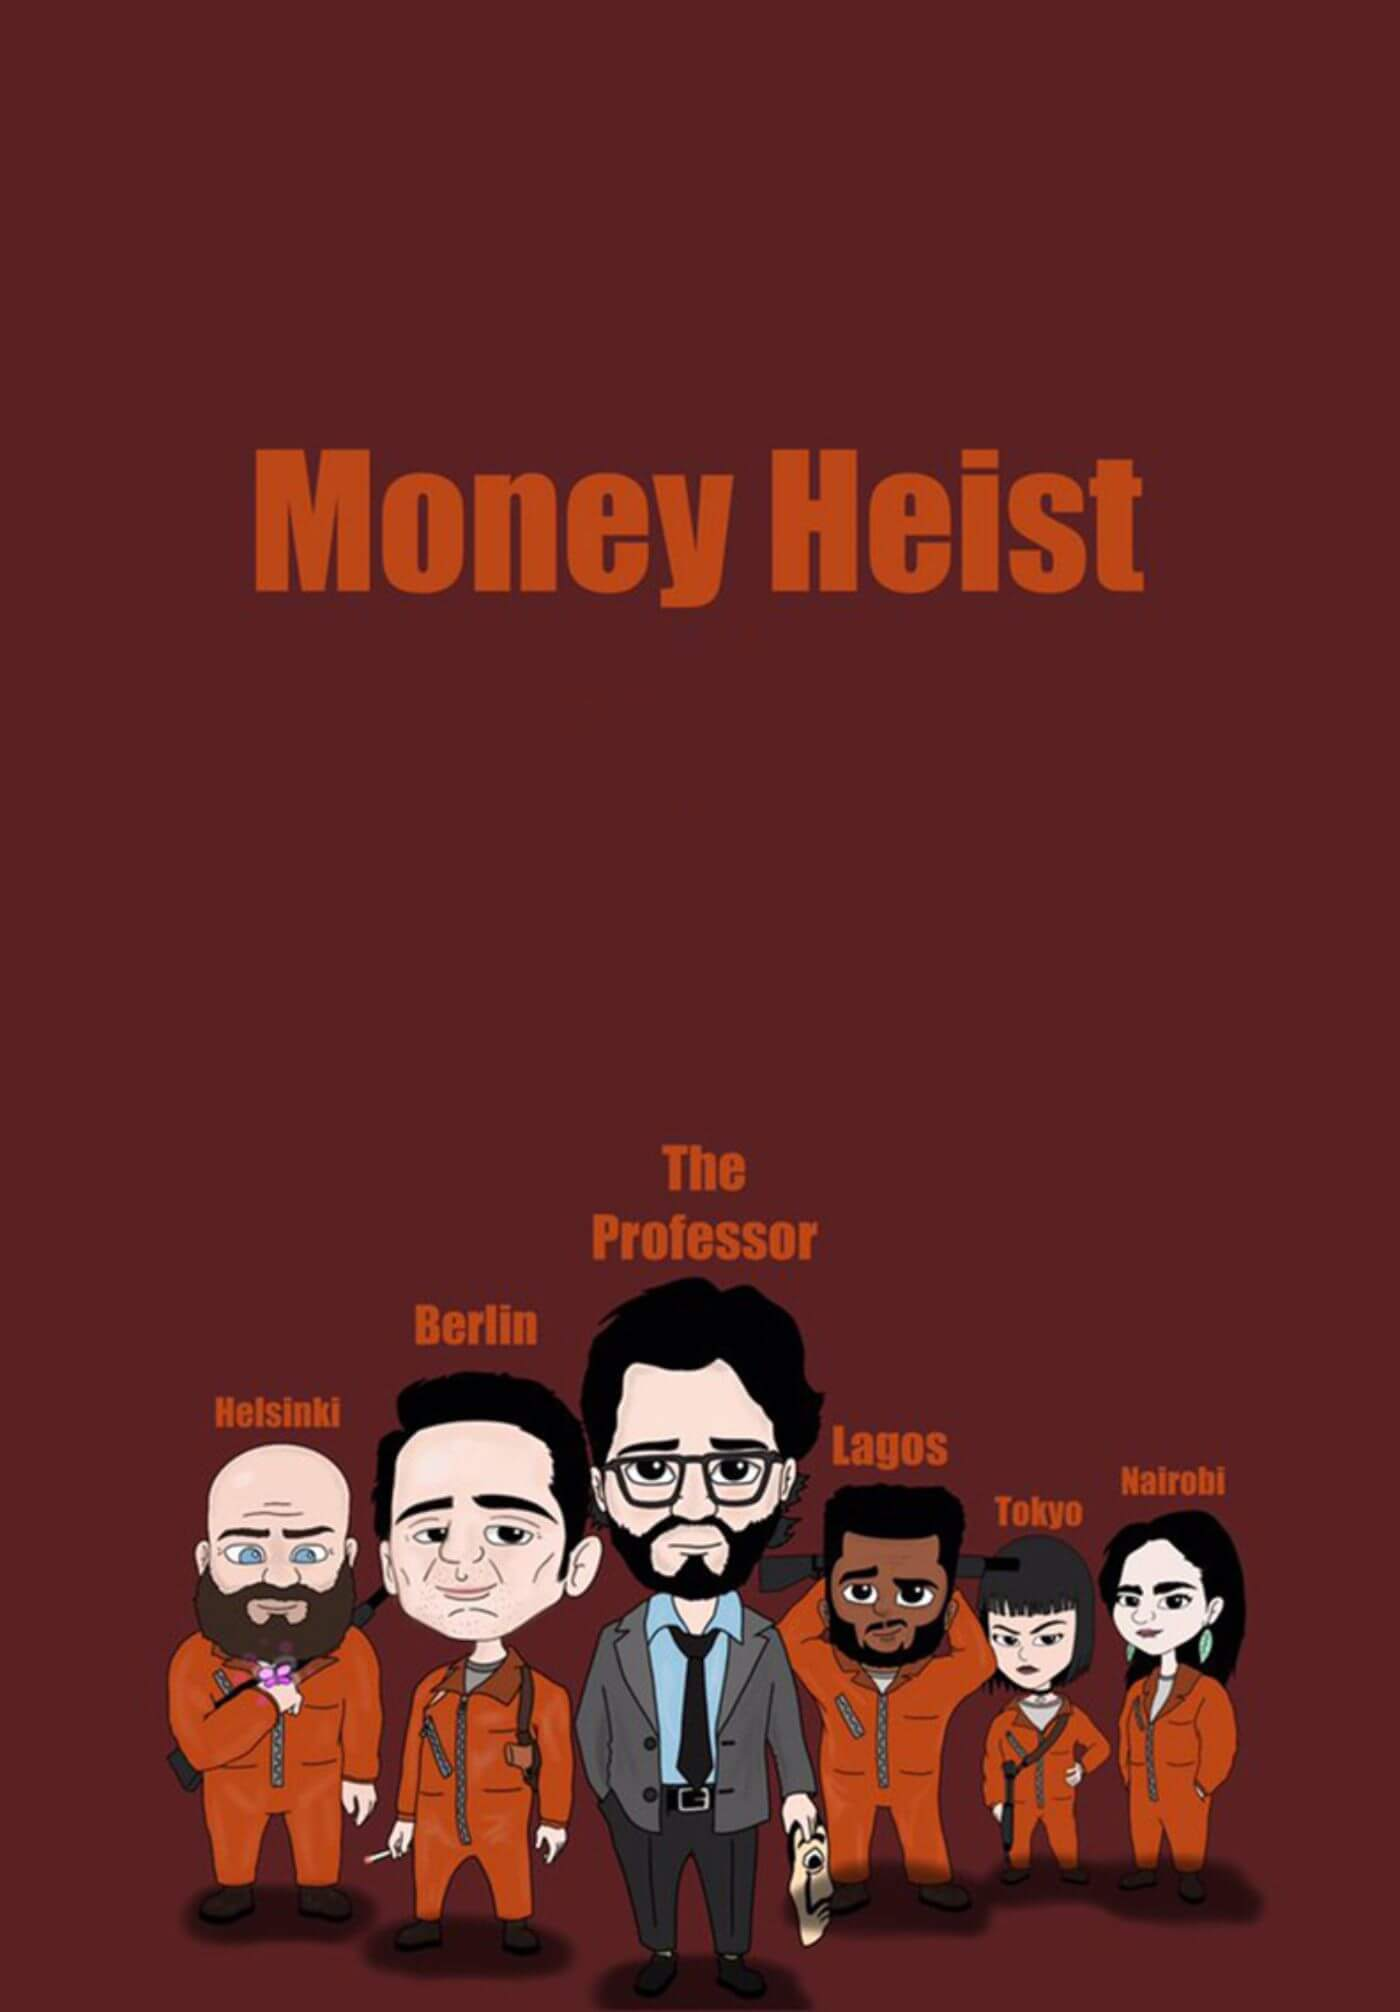 La Casa De Papel - Money Heist - Netflix TV Show Poster Grahic Art